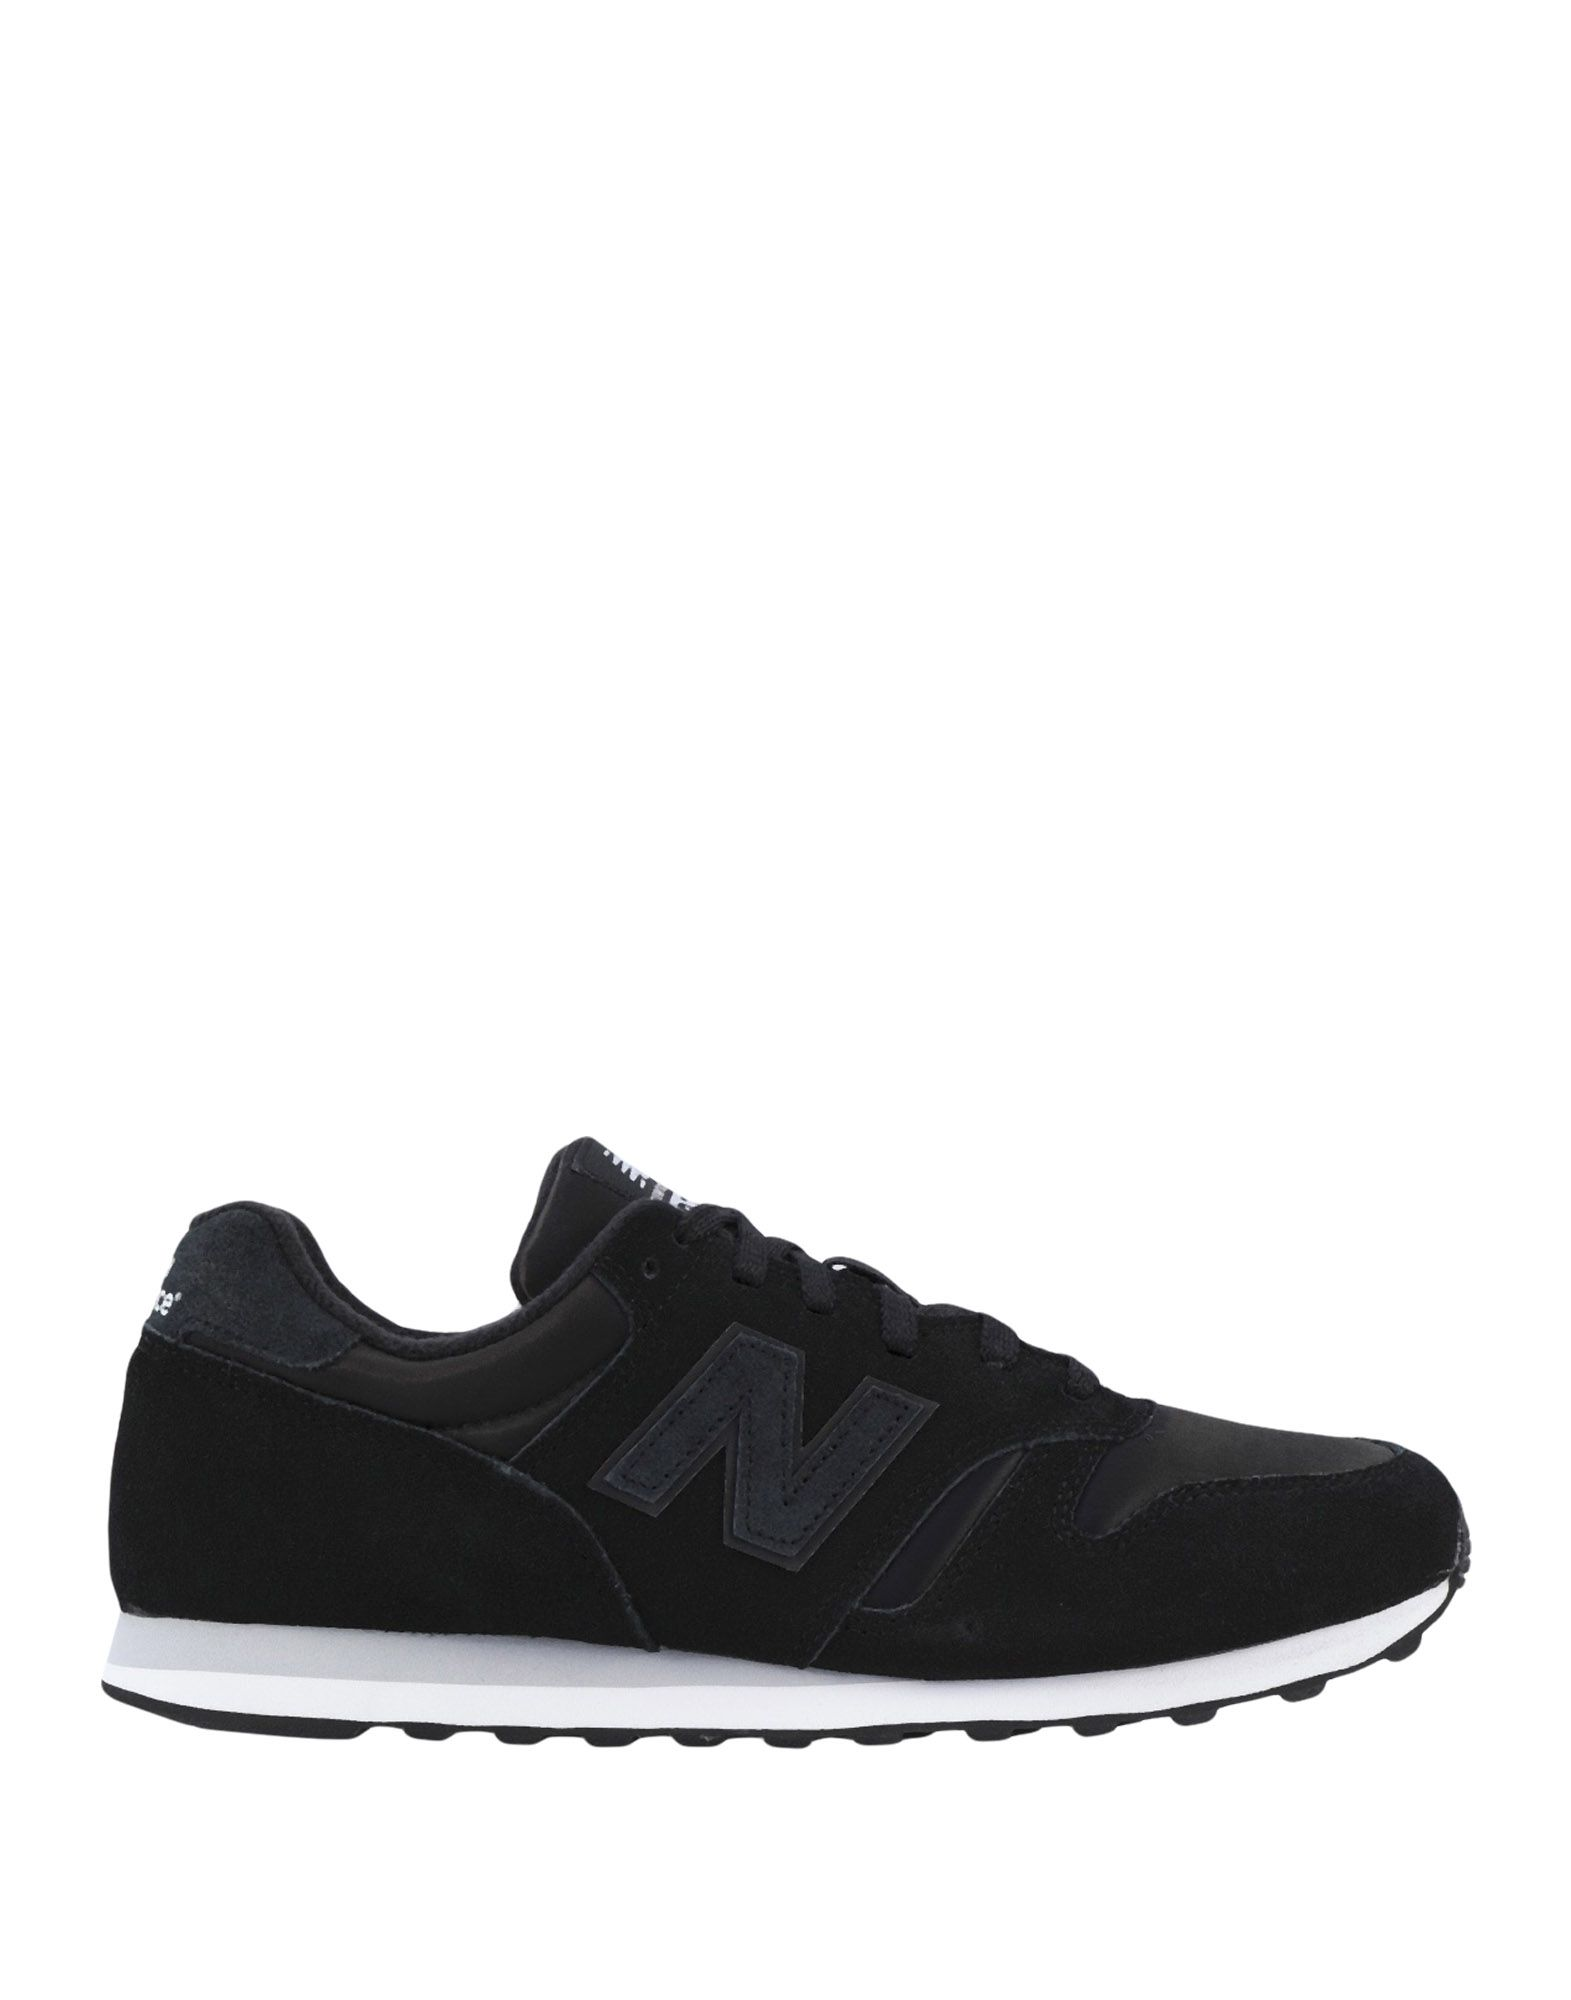 New Balance - Wl373 Suede/Textile - Sneakers - Balance Women New Balance Sneakers online on  United Kingdom - 11554266QD 2f8ad9